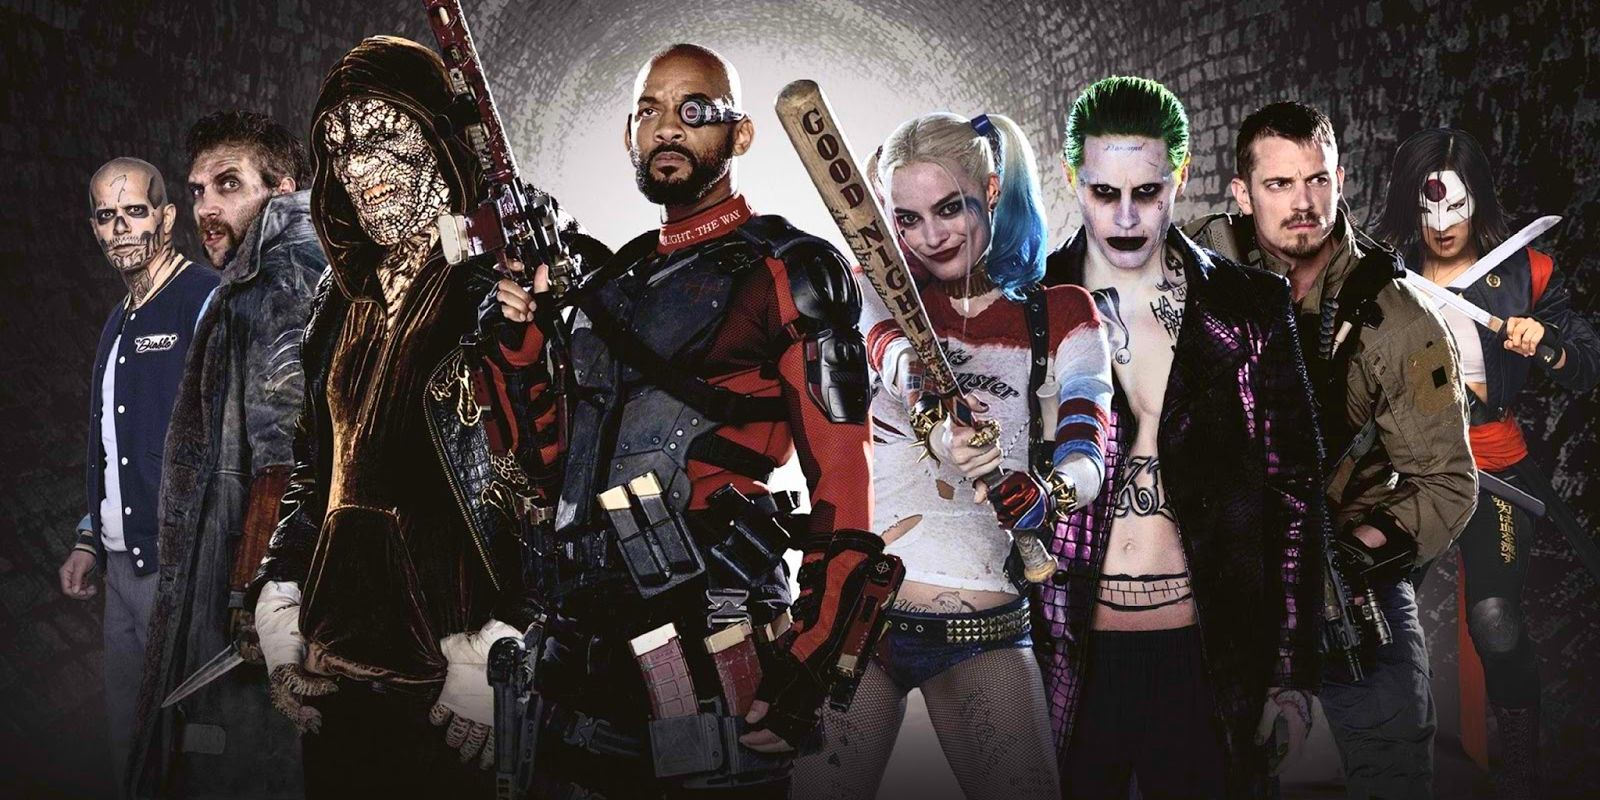 'Suicide Squad' and 'Deadpool' in the Running for Oscar Nomination